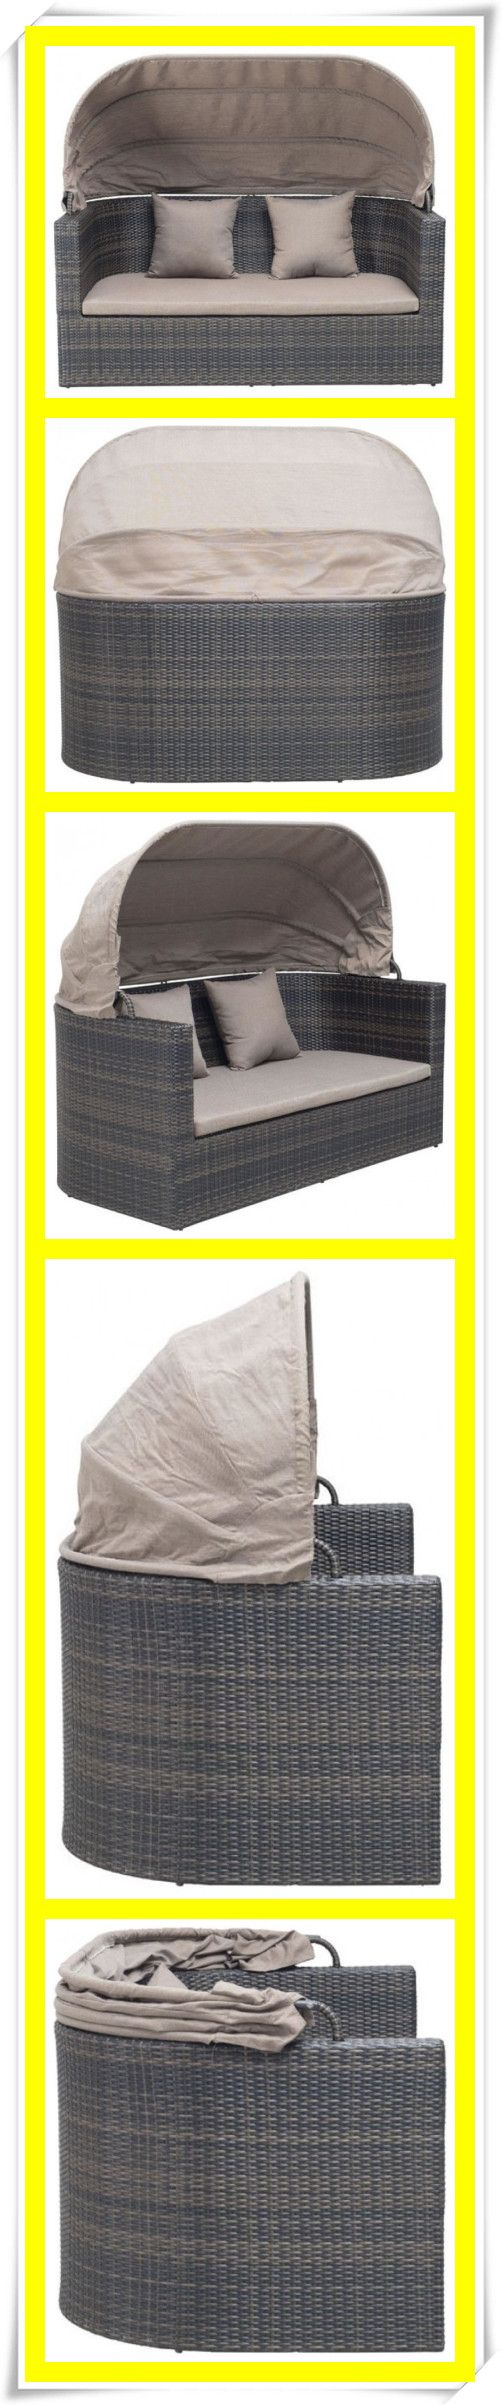 Outdoor Furniture Sofa Furniture Rattan Modern Sofa Loveseat 2 Seater Sofa with Canopy & 47 best Outdoor DAYBED images on Pinterest | Decks Outdoor daybed ...